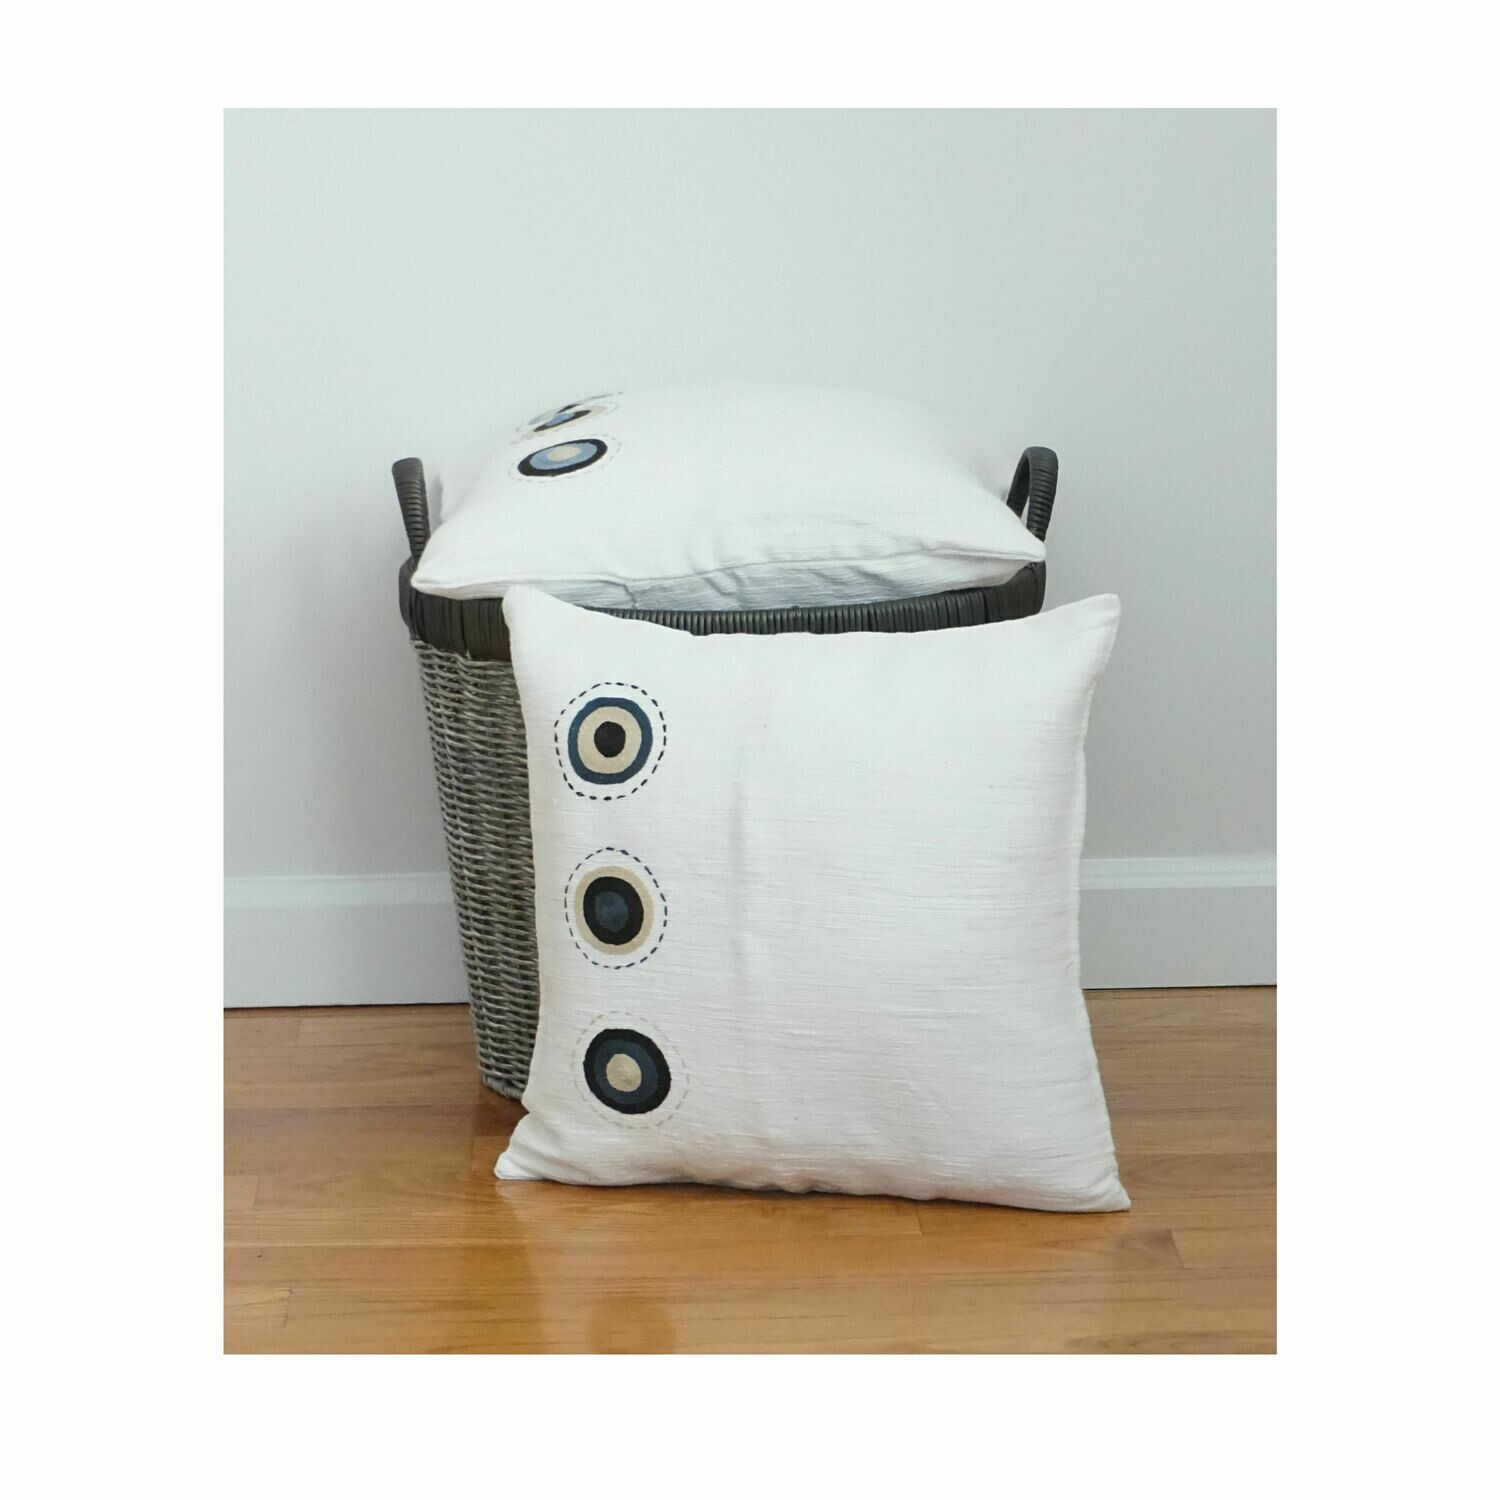 Accent Throw Pillow For Sofa, Bed Made of Cotton